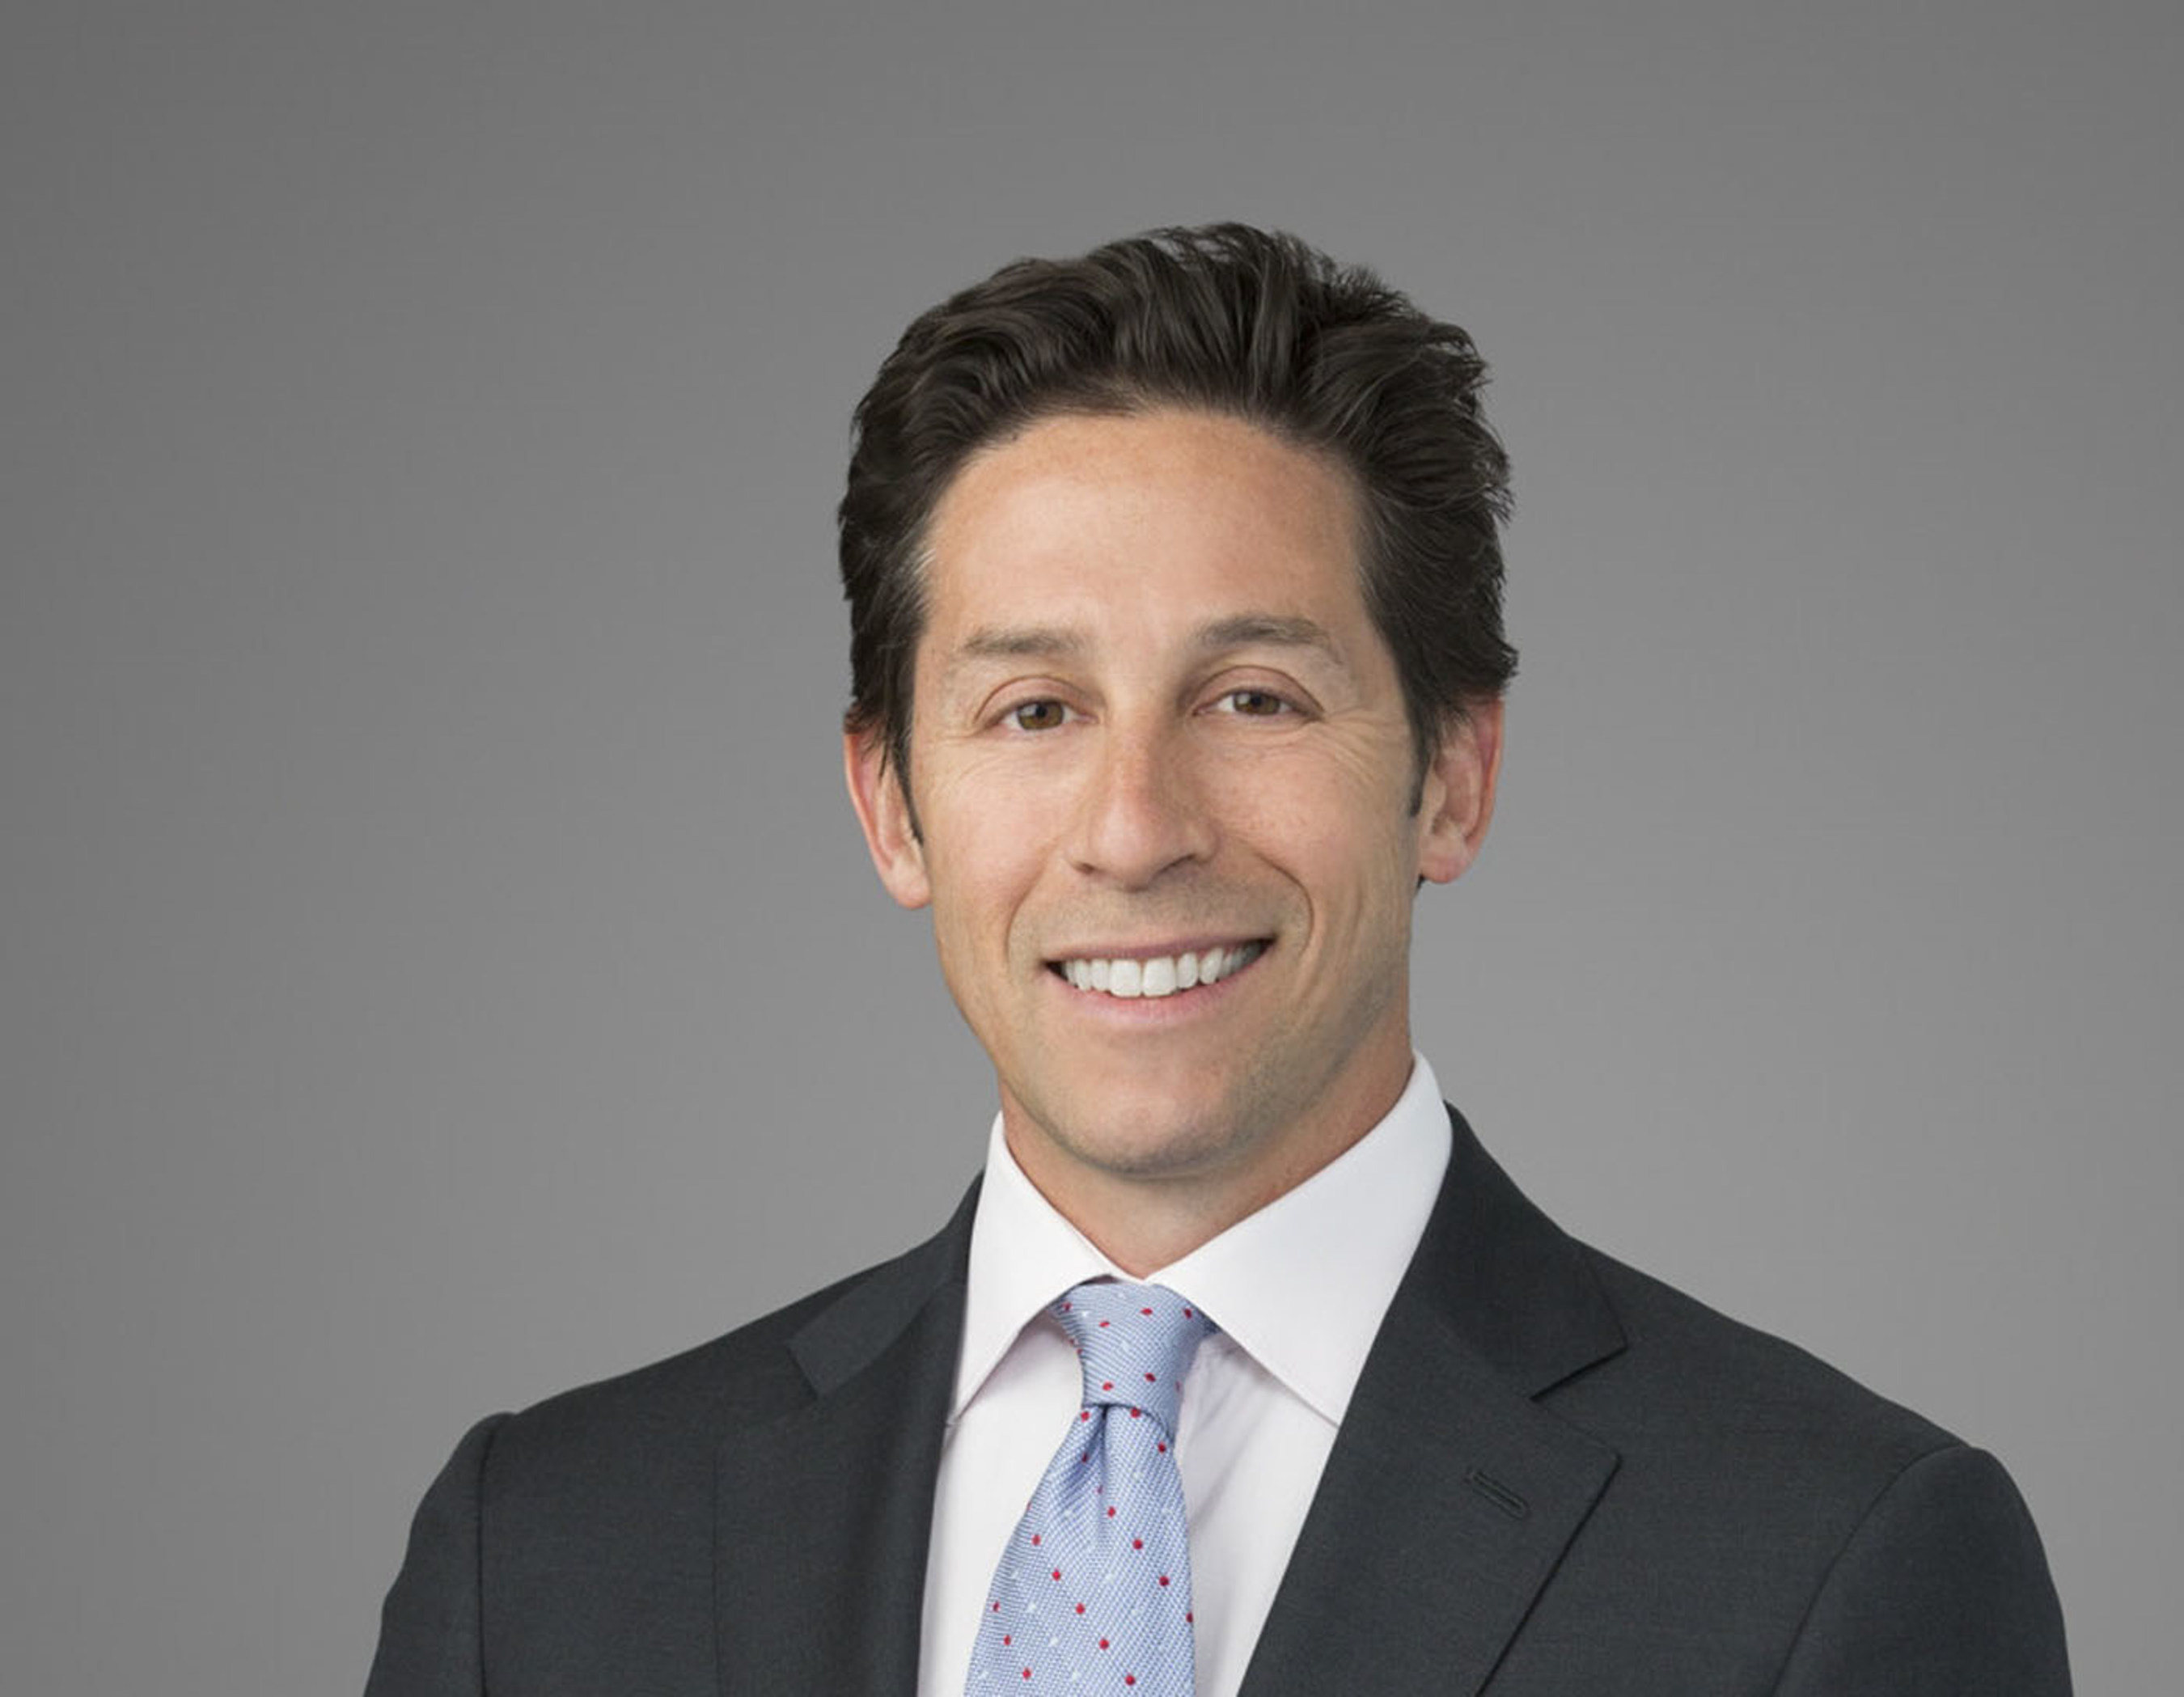 Jeremy Kroll, President, CEO and Co-Founder of K2 Intelligence